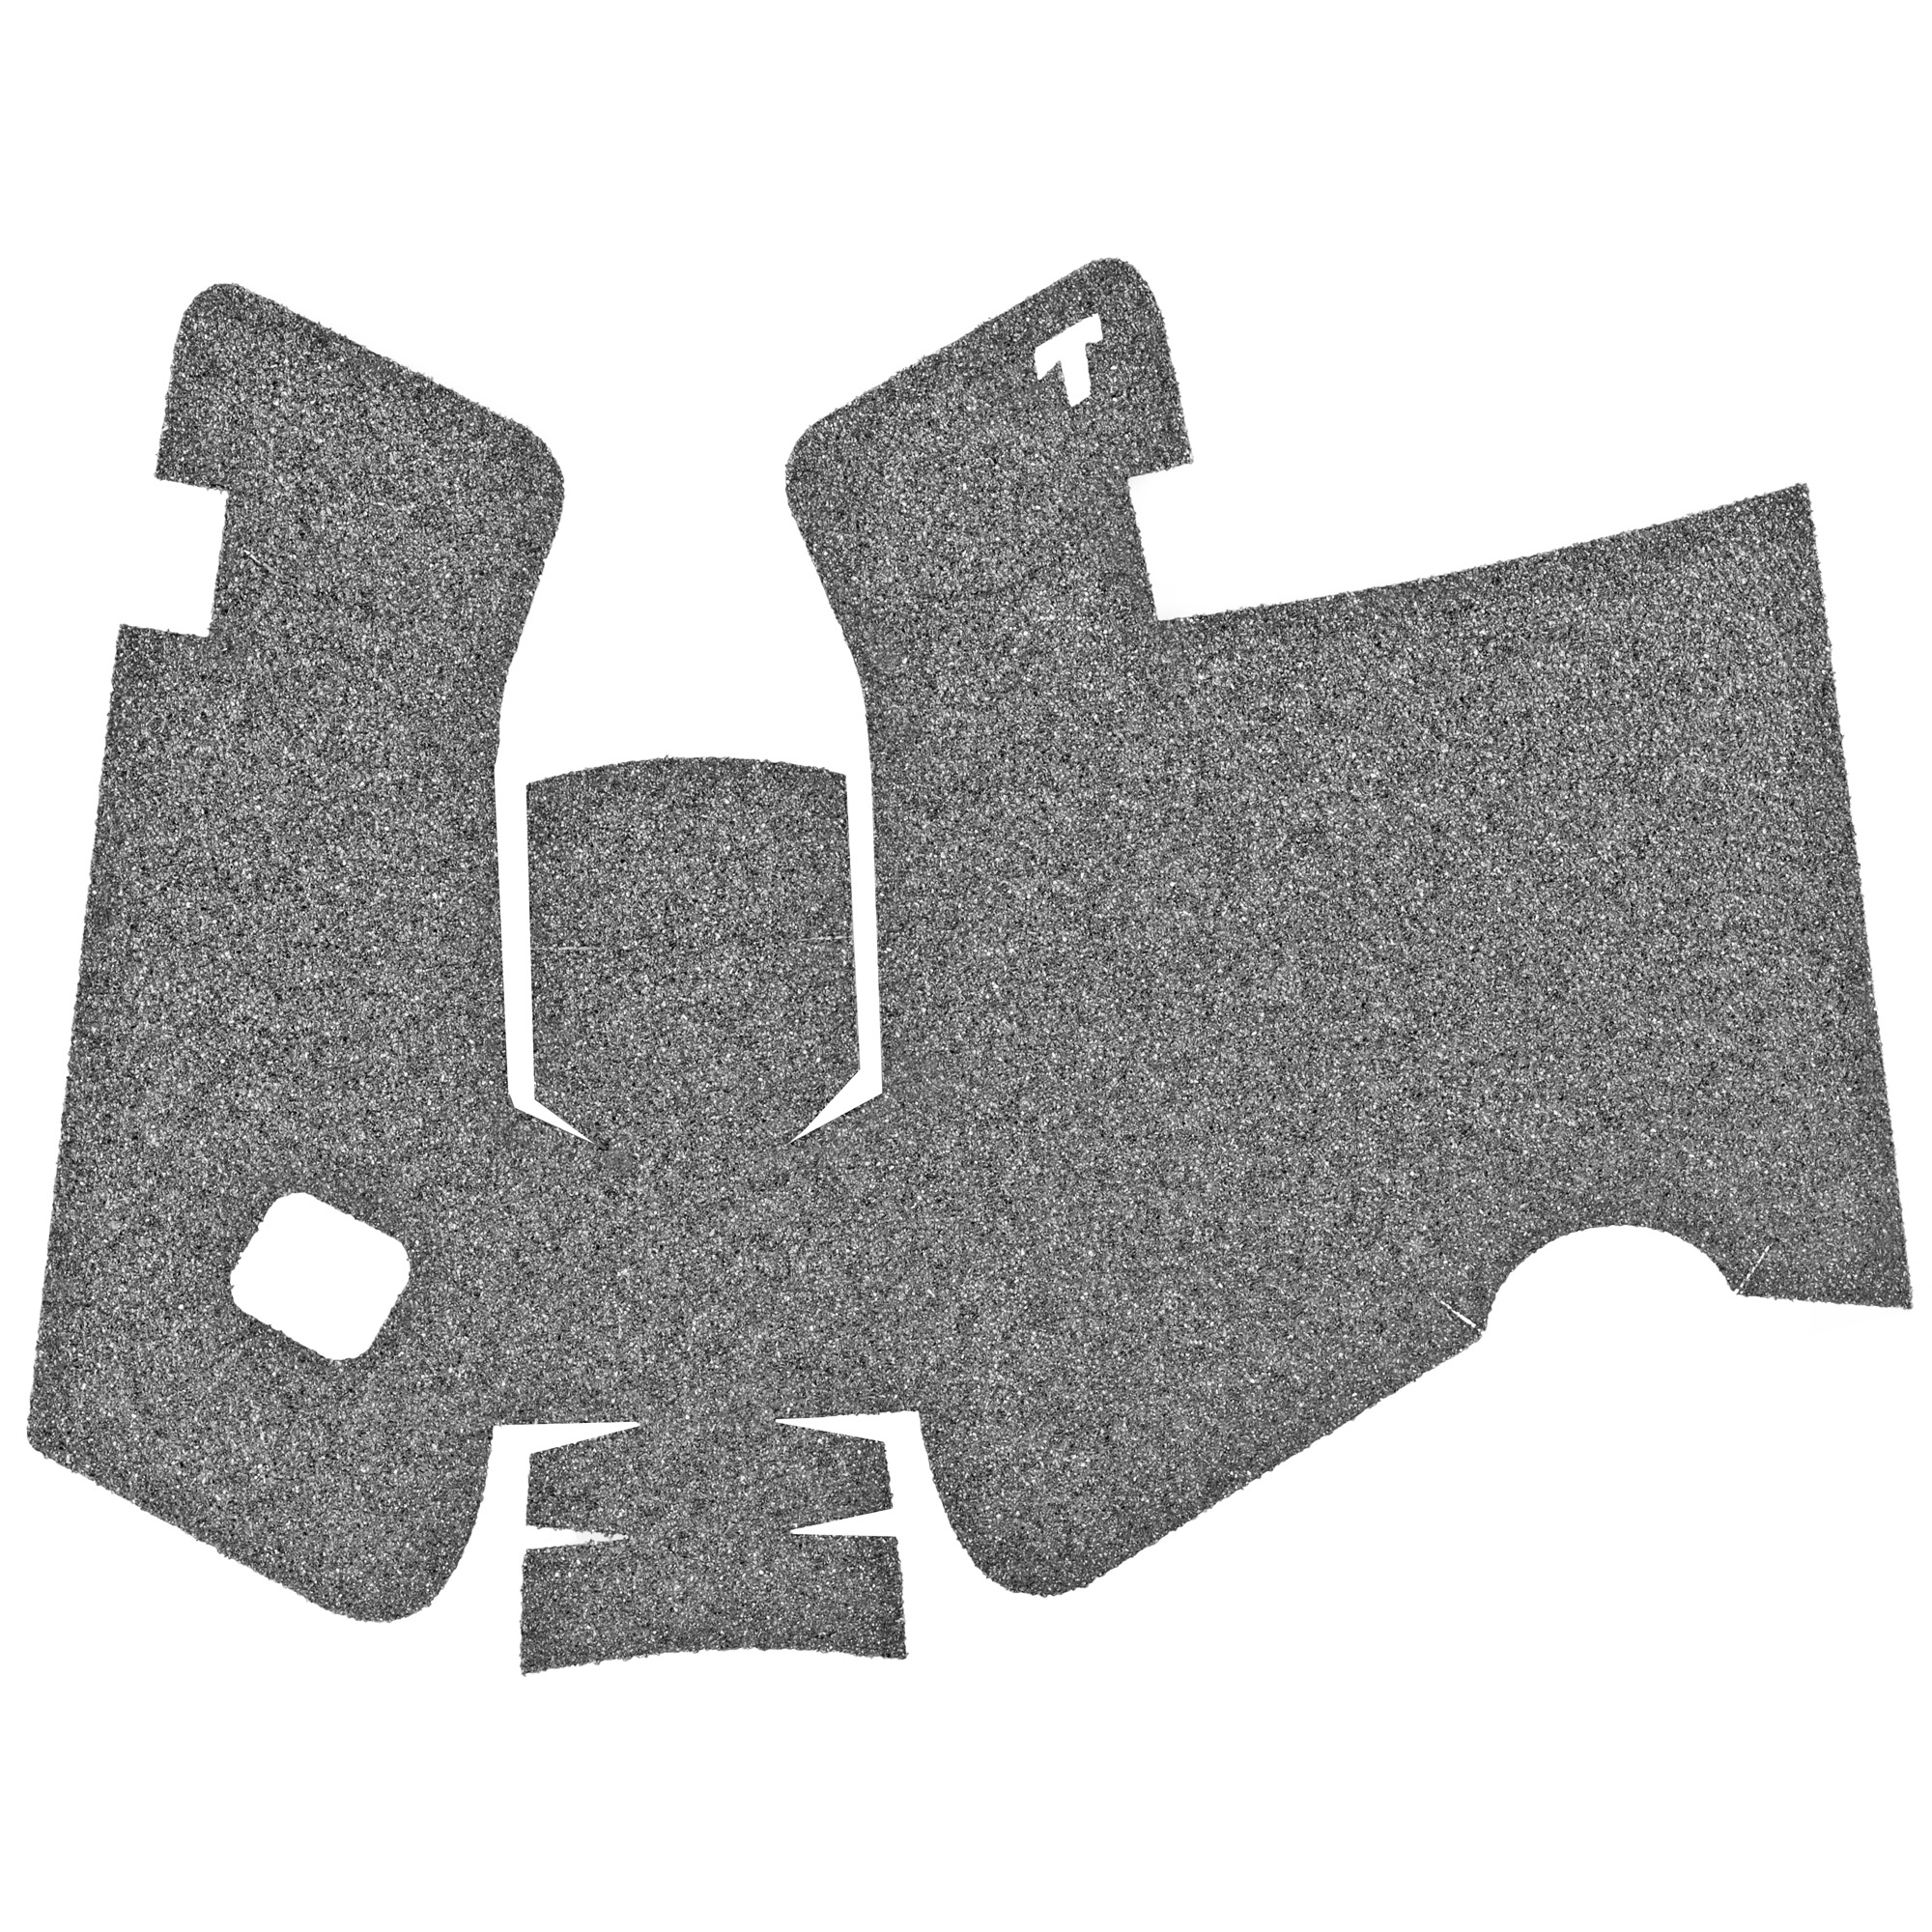 """TALON Grips for Glock Gen 5 Models 17"""" 22"""" 24"""" 31"""" 34"""" 35"""" and 37 with No Backstrap. This rear wrap grip is in the granulate texture. This grip provides full coverage on the side panels including above the thumb rest"""" ample coverage on the backstrap"""" and full coverage under the trigger guard. This grip has a logo cutout for the Glock emblem on the left side of the handle. This grip sticks extremely well even with the Rough Textured Frame (RTF)."""